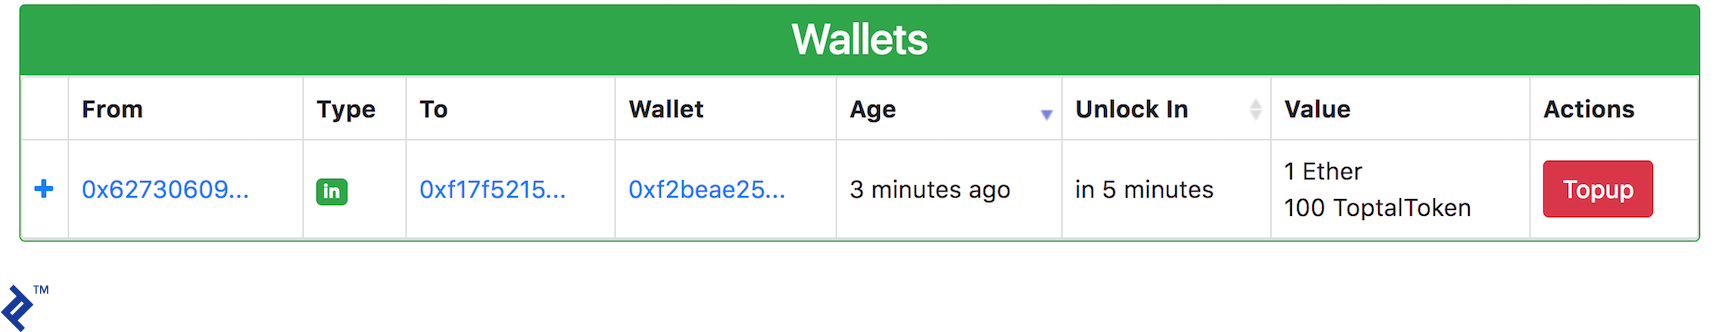 Time-locked Wallets: A Truffle Framework Tutorial | Toptal